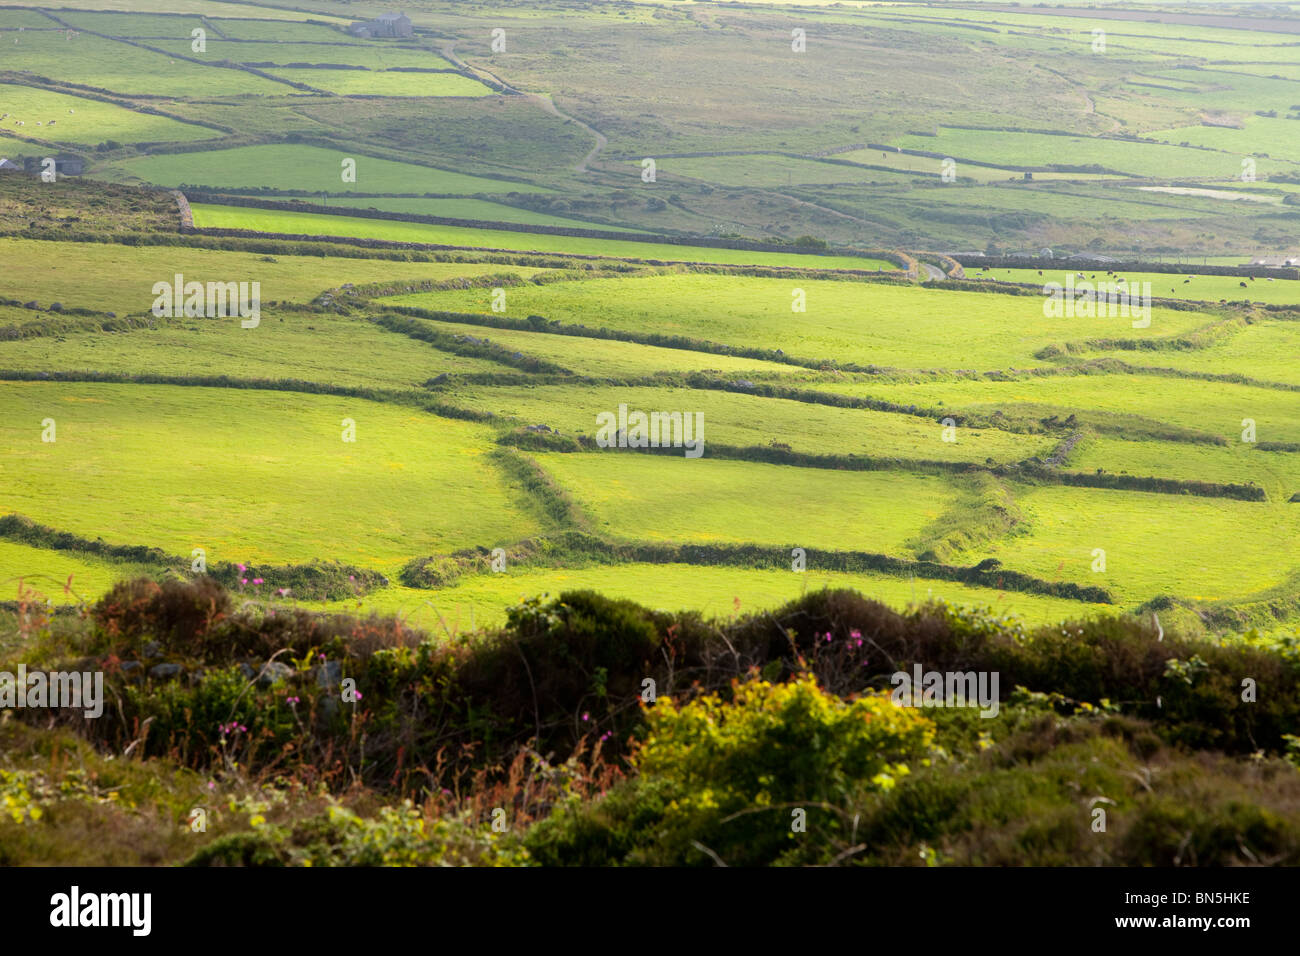 Ancient field boundaries near Bosigran near the Cornwall coast, UK. - Stock Image